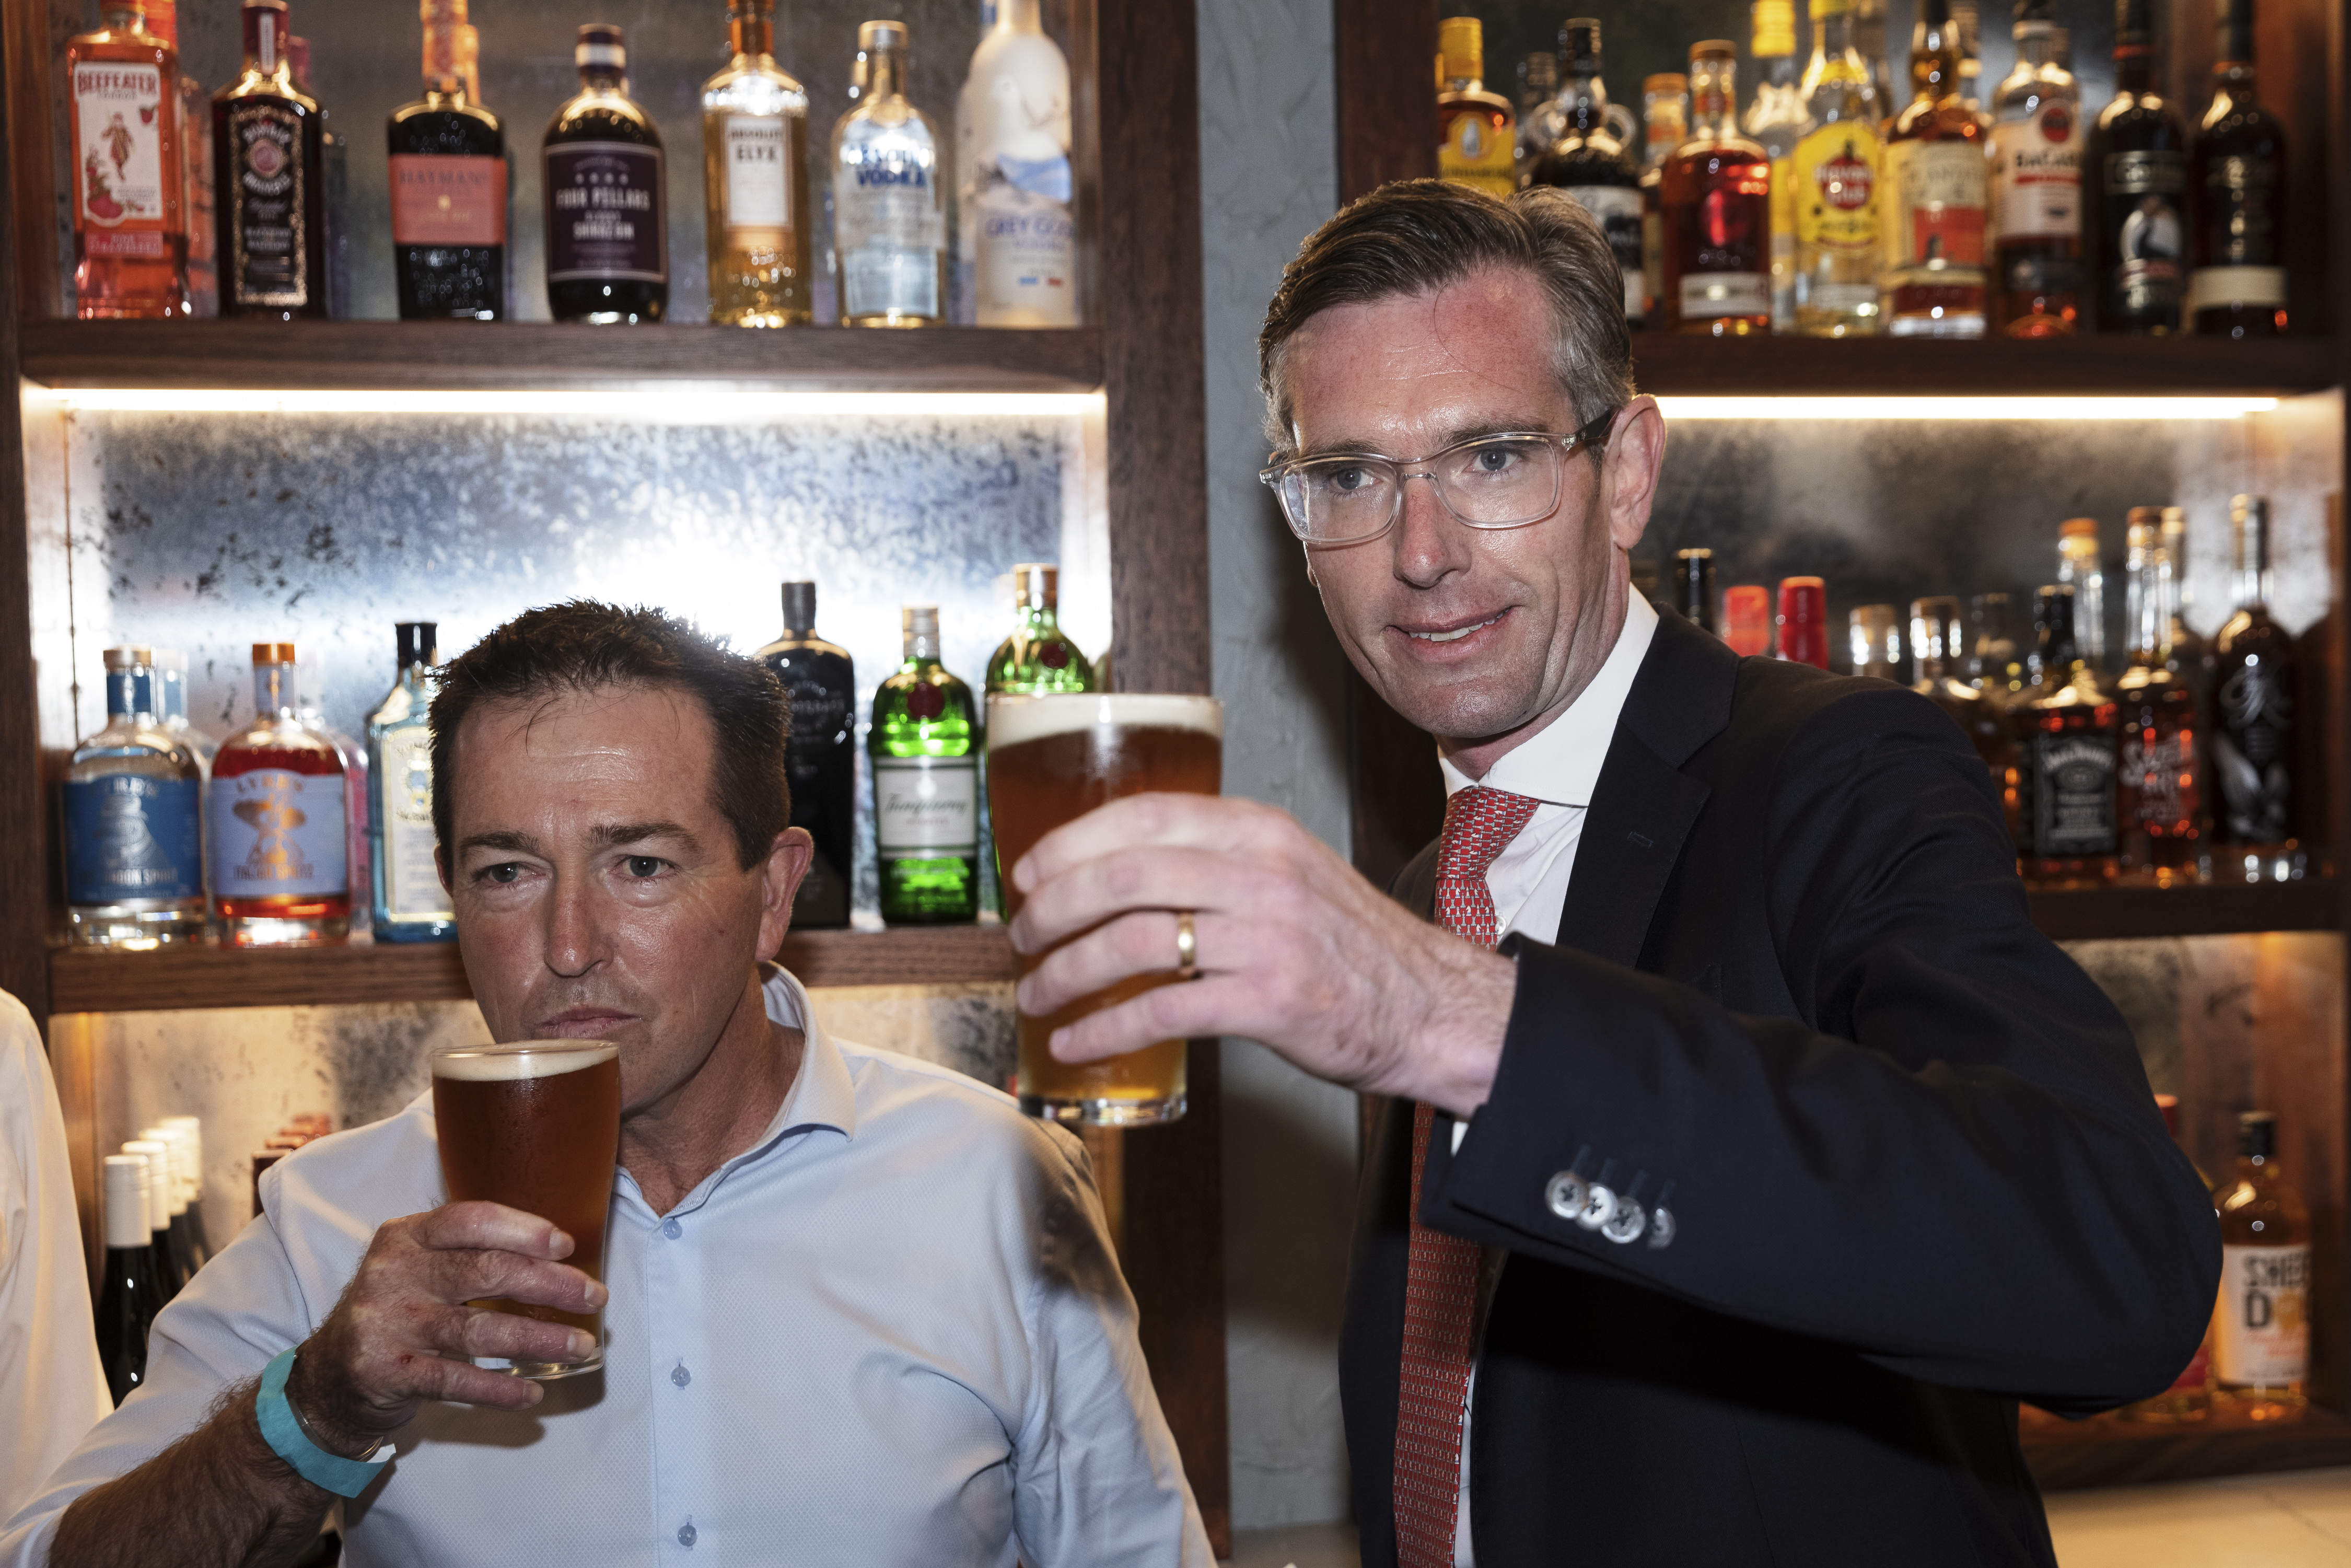 Premier Dominic Perrottet (right) and Deputy Premier Pail Toole drink a beer before holding a media conference at Watson's Pub in Moore Park on October 11, 2021 in Sydney, Australia. (Photo by Brook Mitchell/Getty Images)